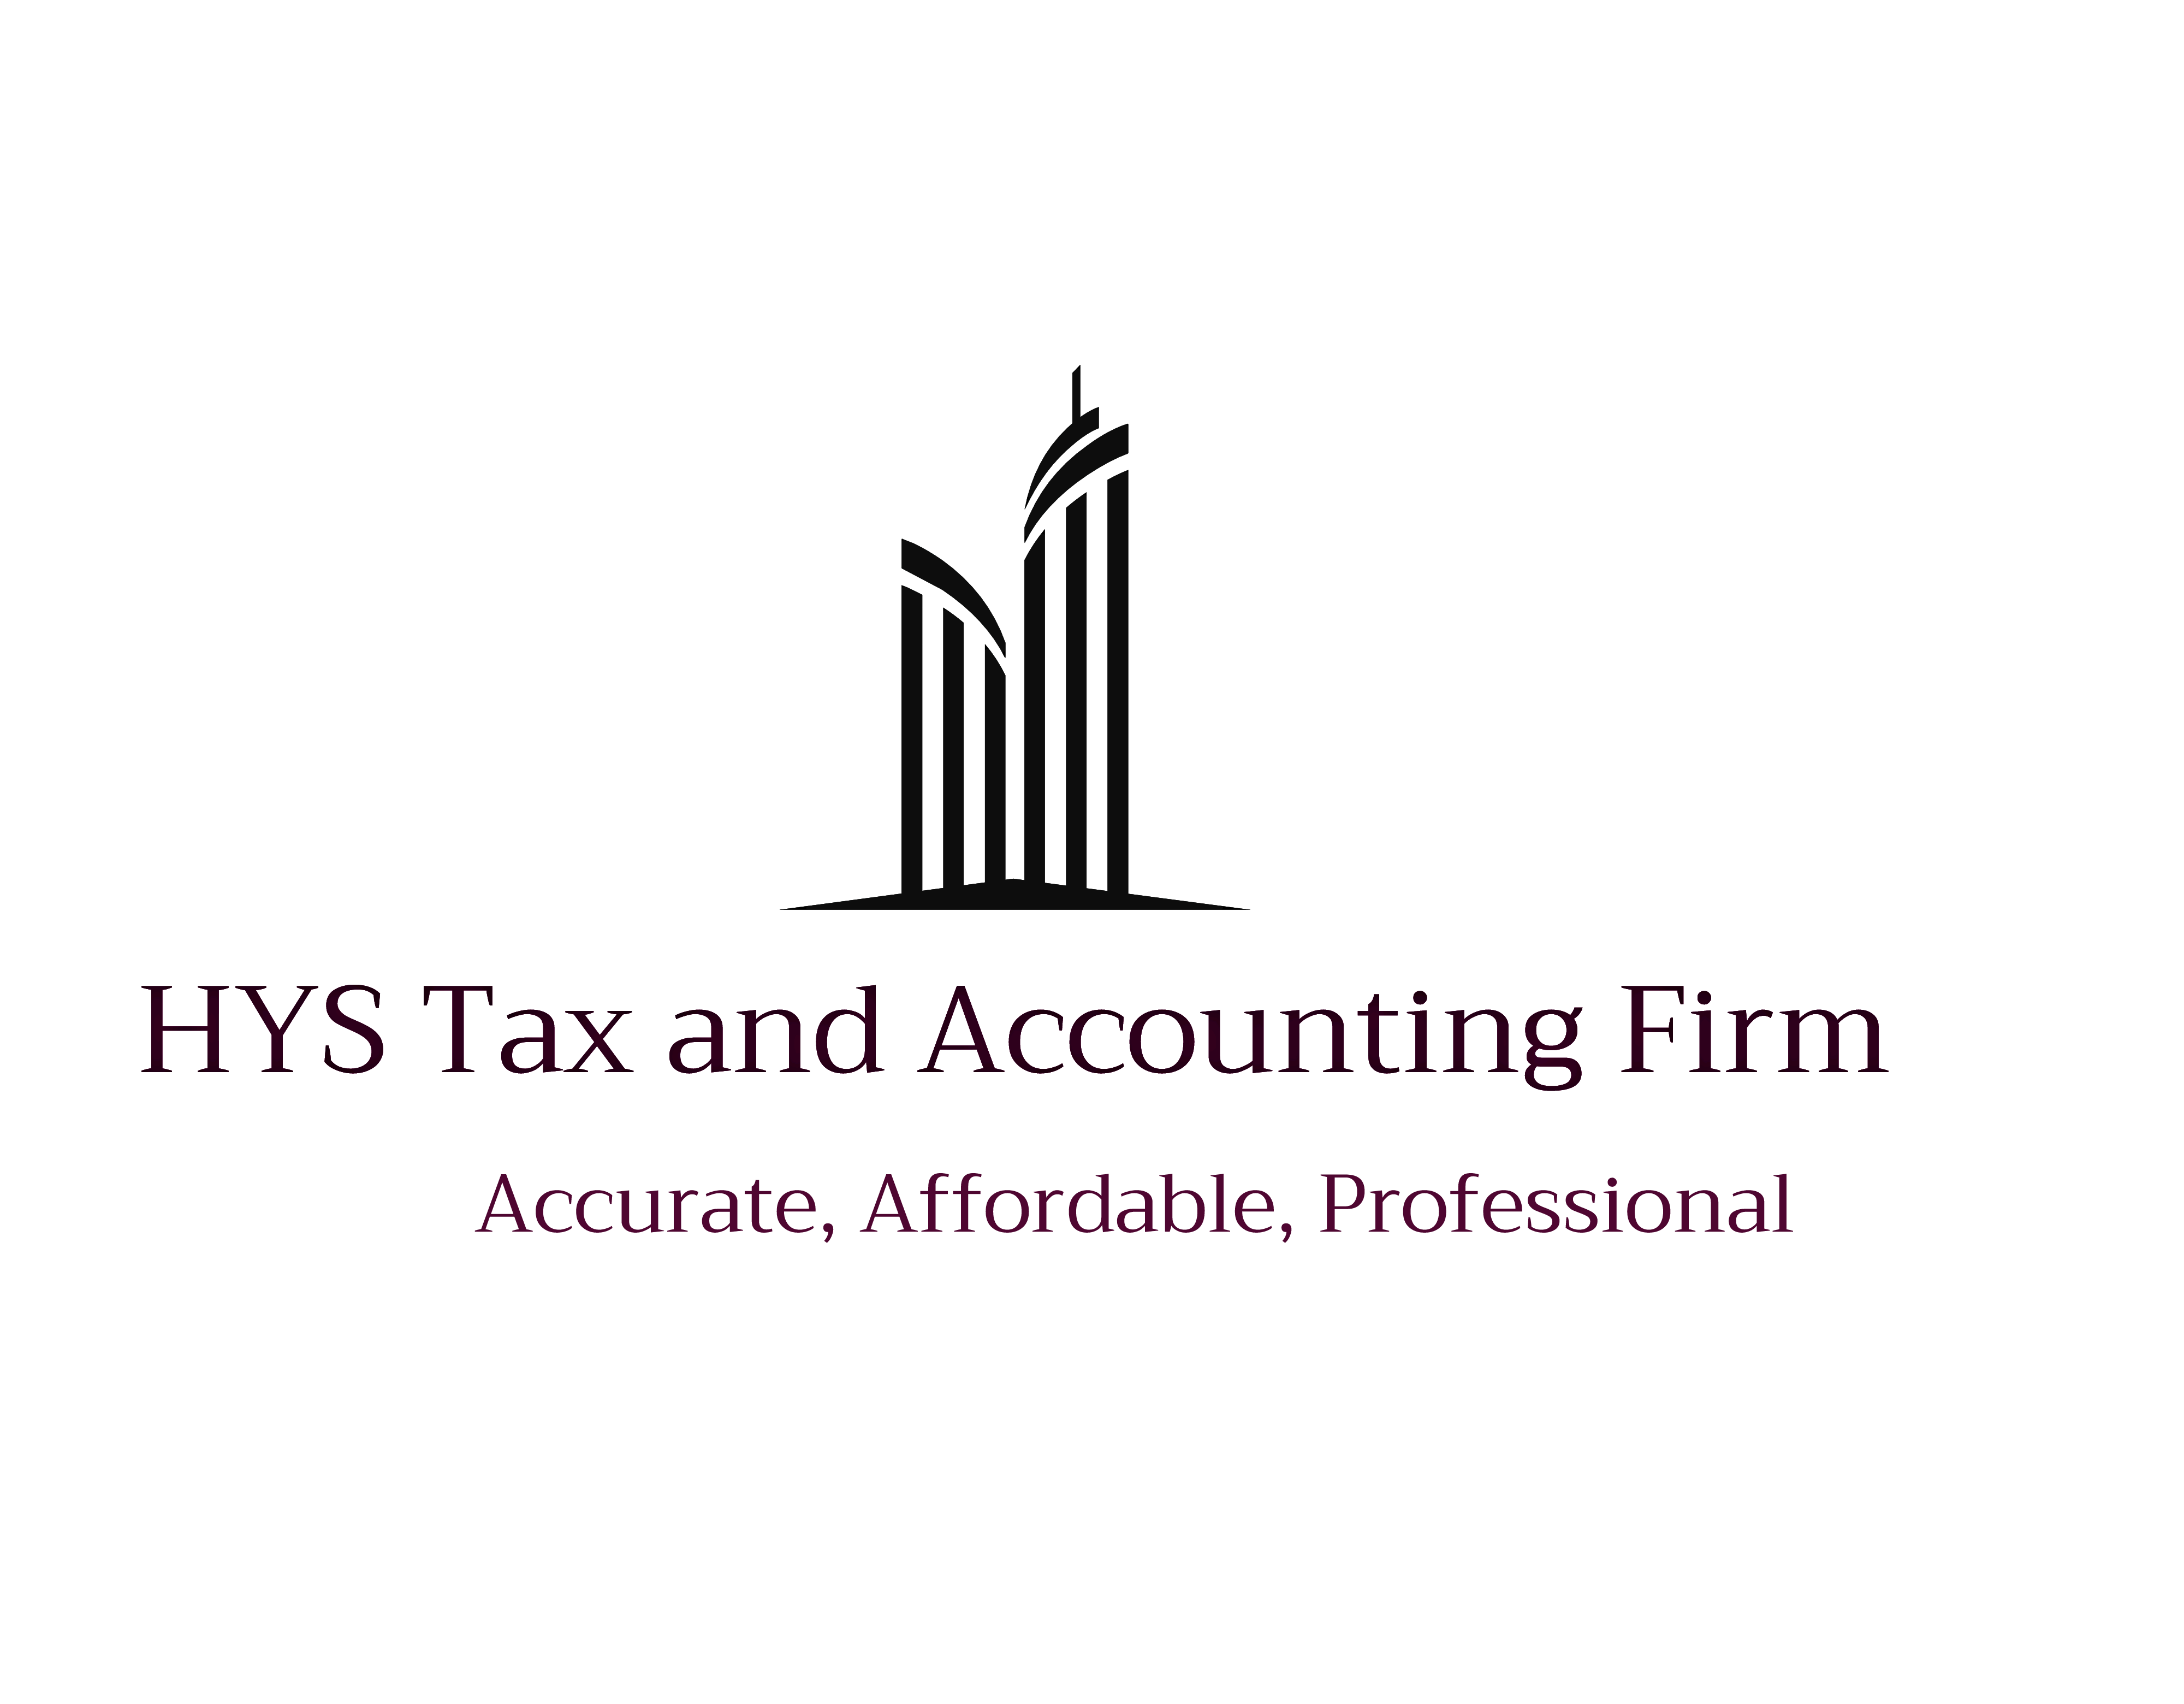 HYS Tax & Accounting Firm